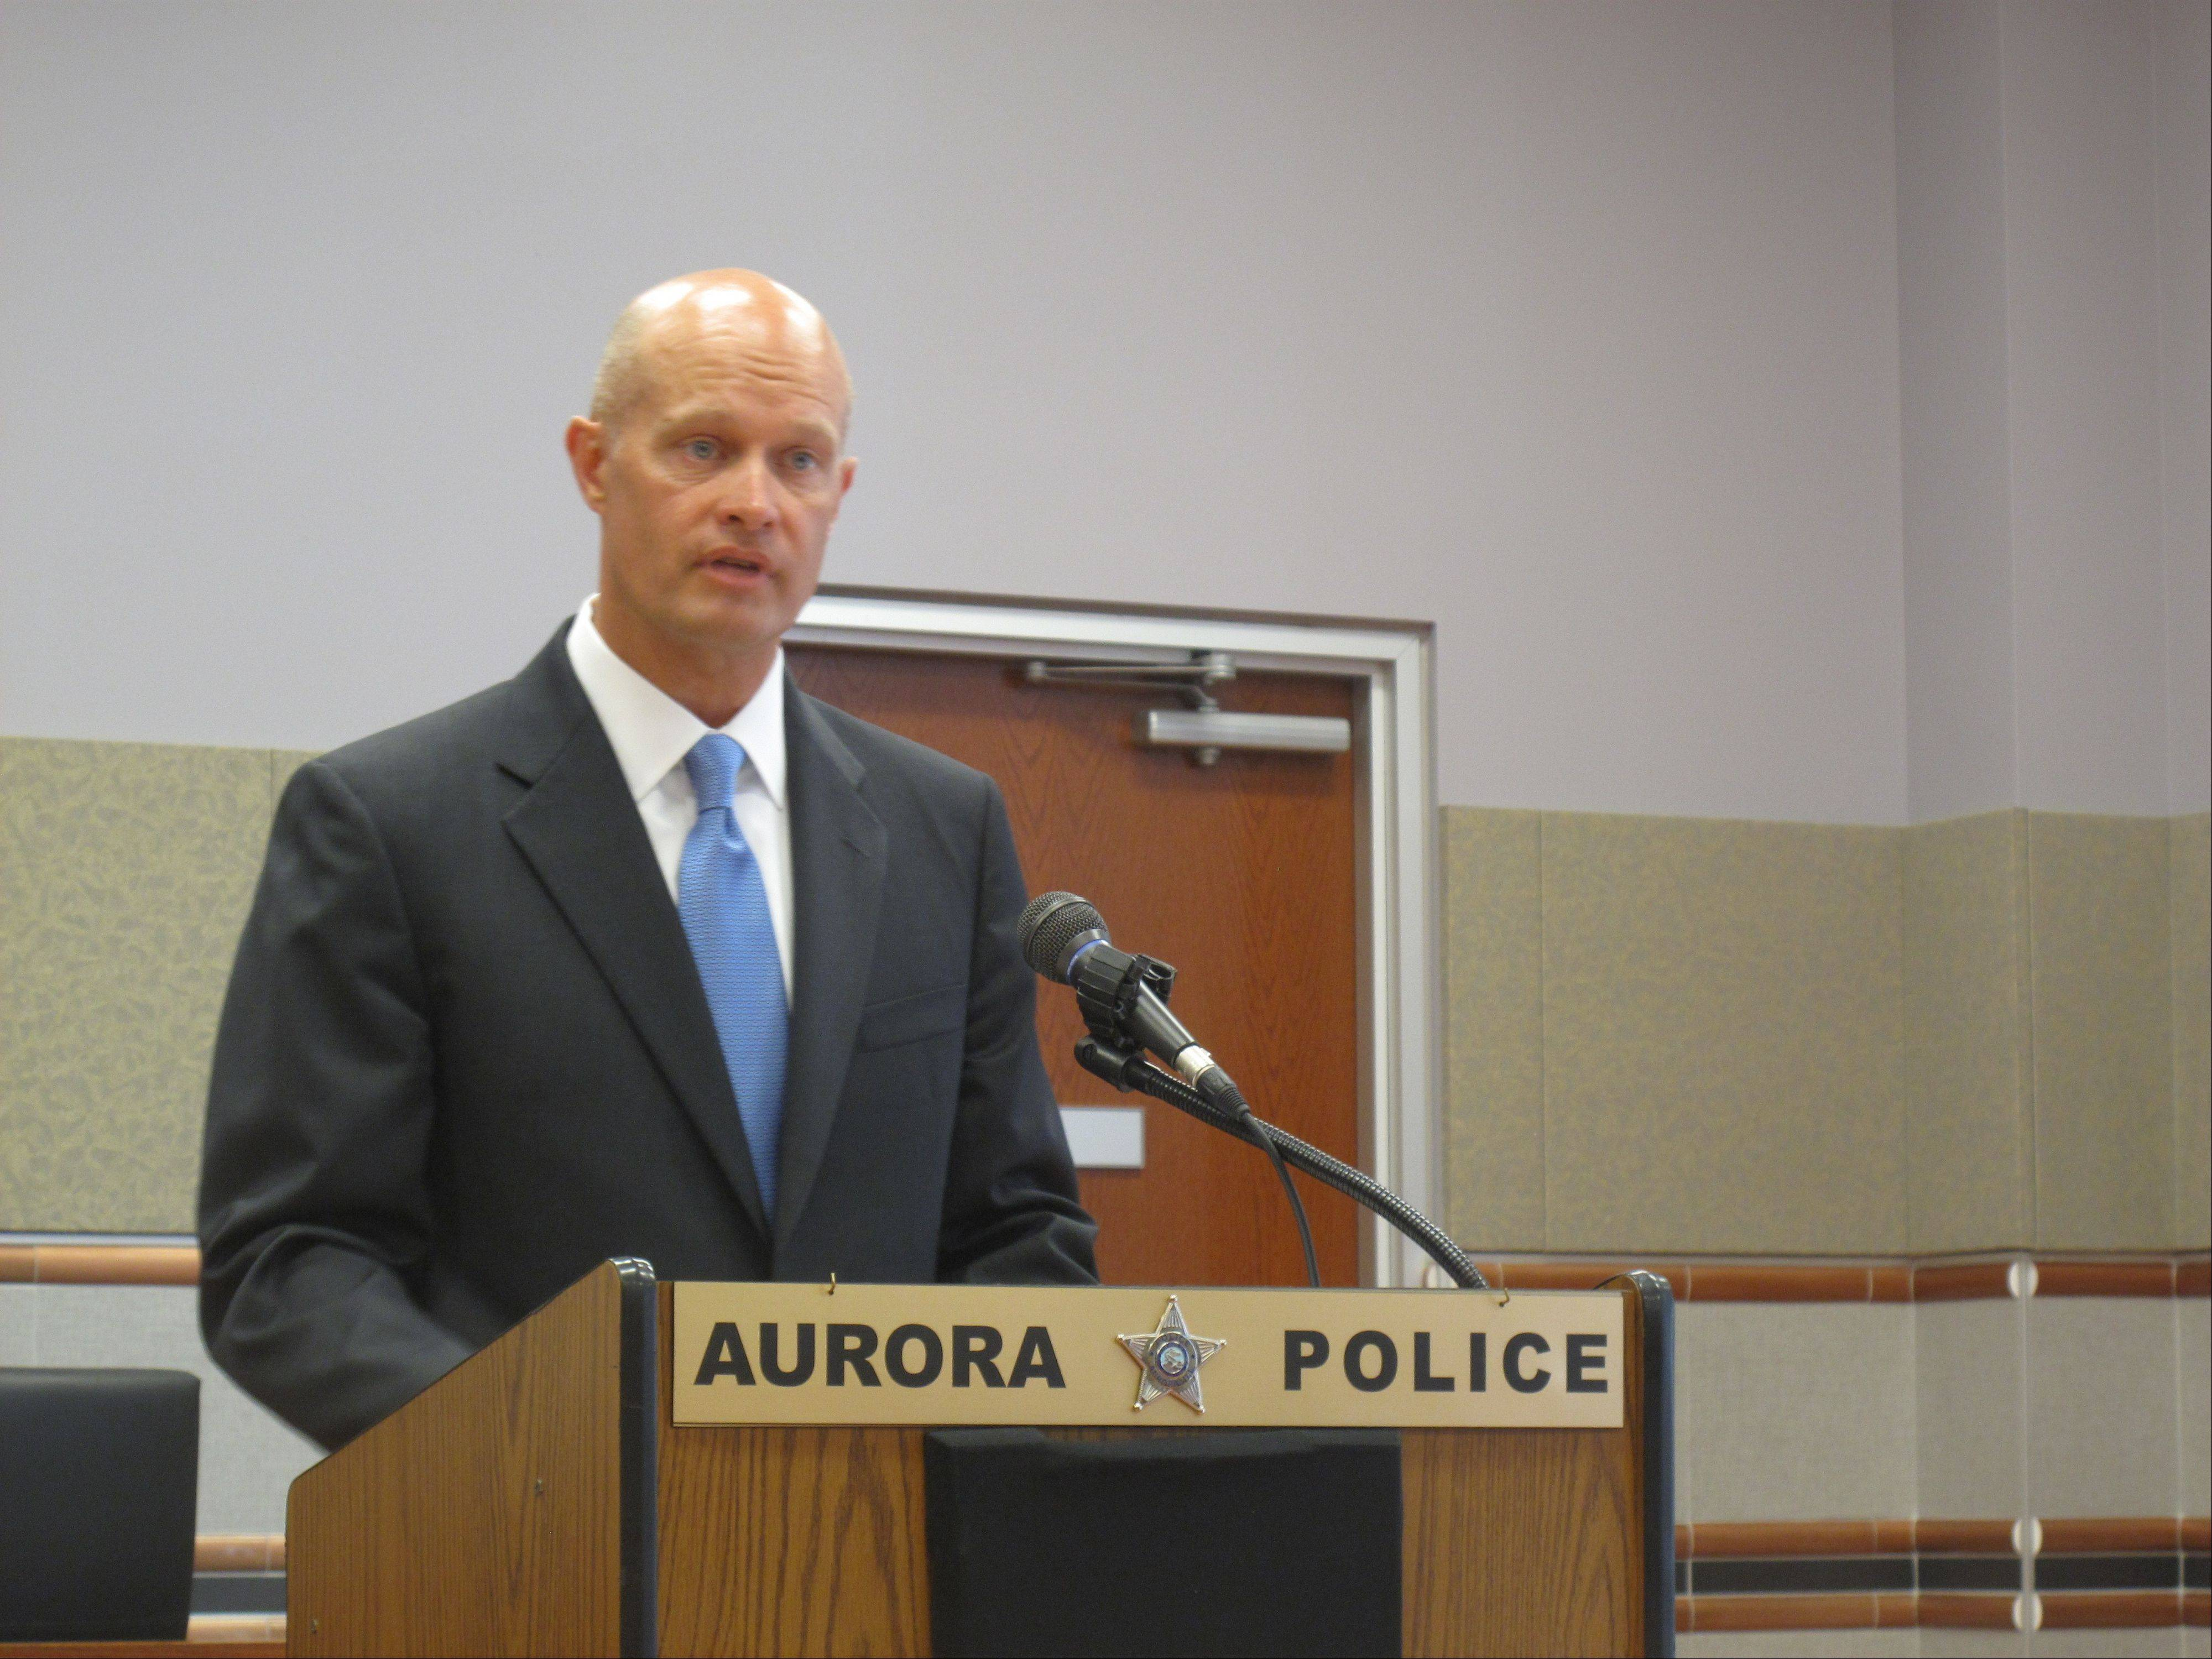 Kane County State's Attorney Joe McMahon says the lawsuit filed against 35 members of the Latin Kings street gang living in Aurora gives law enforcement another tool to discourage violent gang activity.